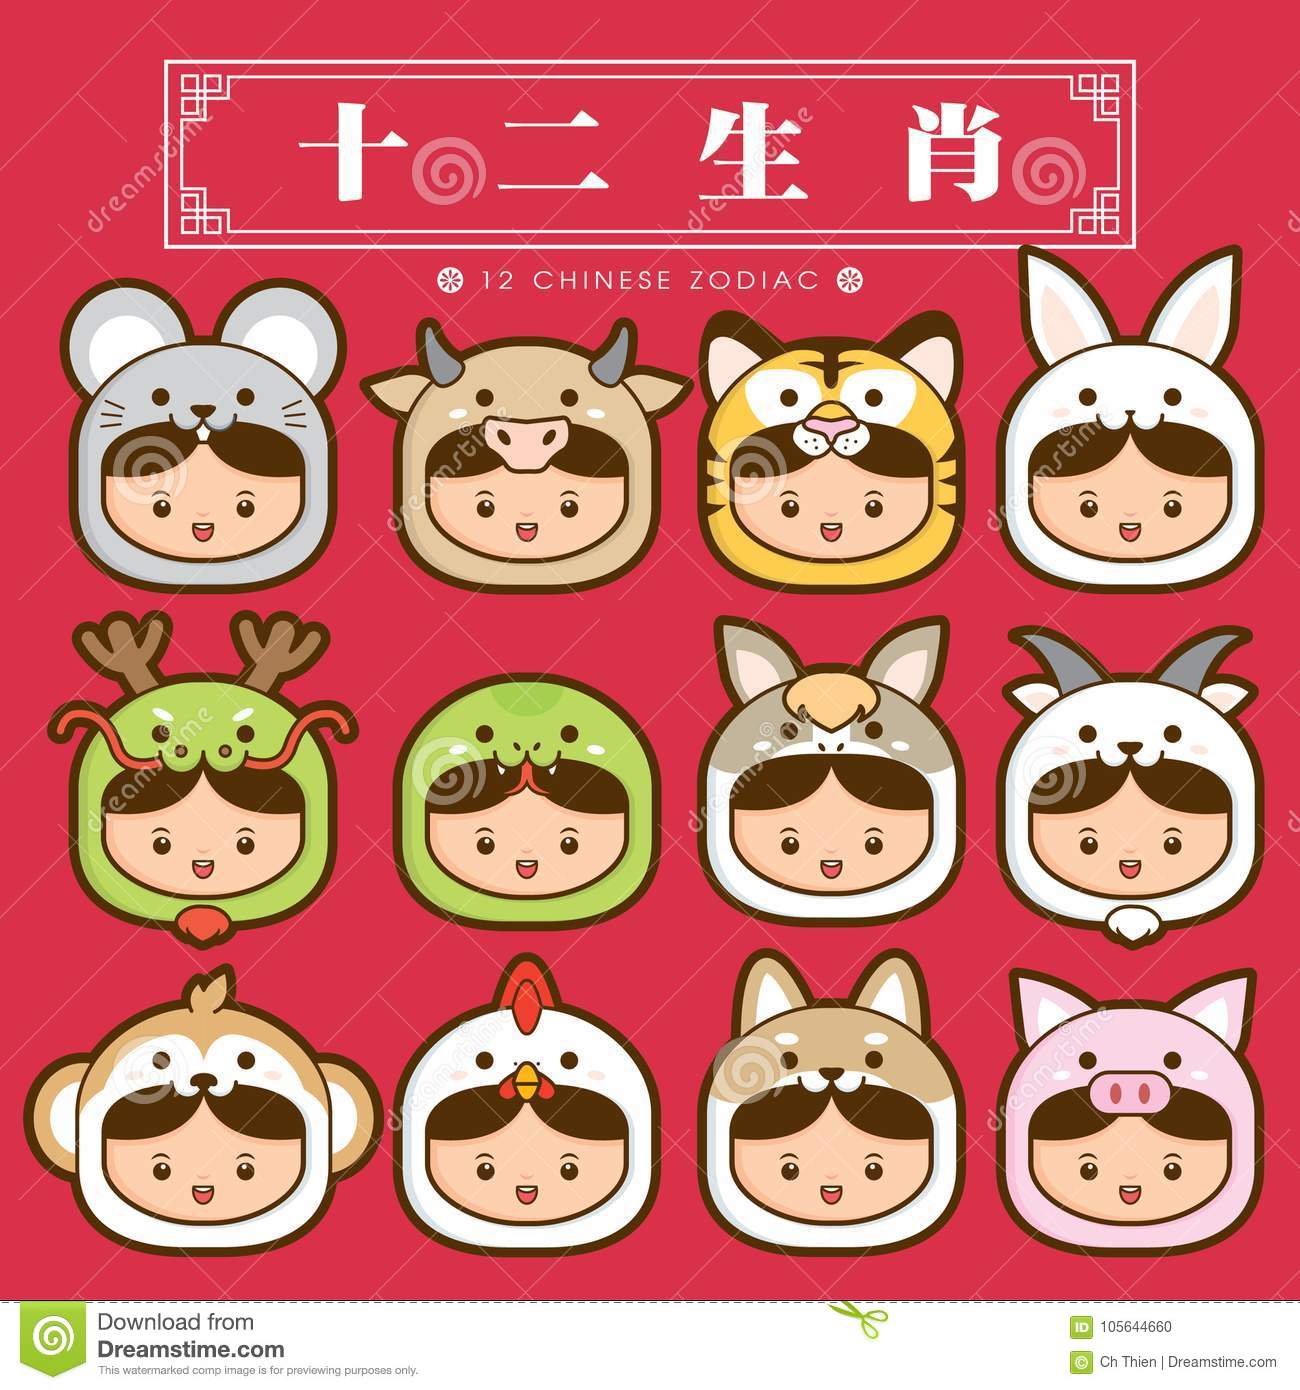 12 Chinese Zodiac Icon Set Chinese Translation 12 Chinese Zodiac